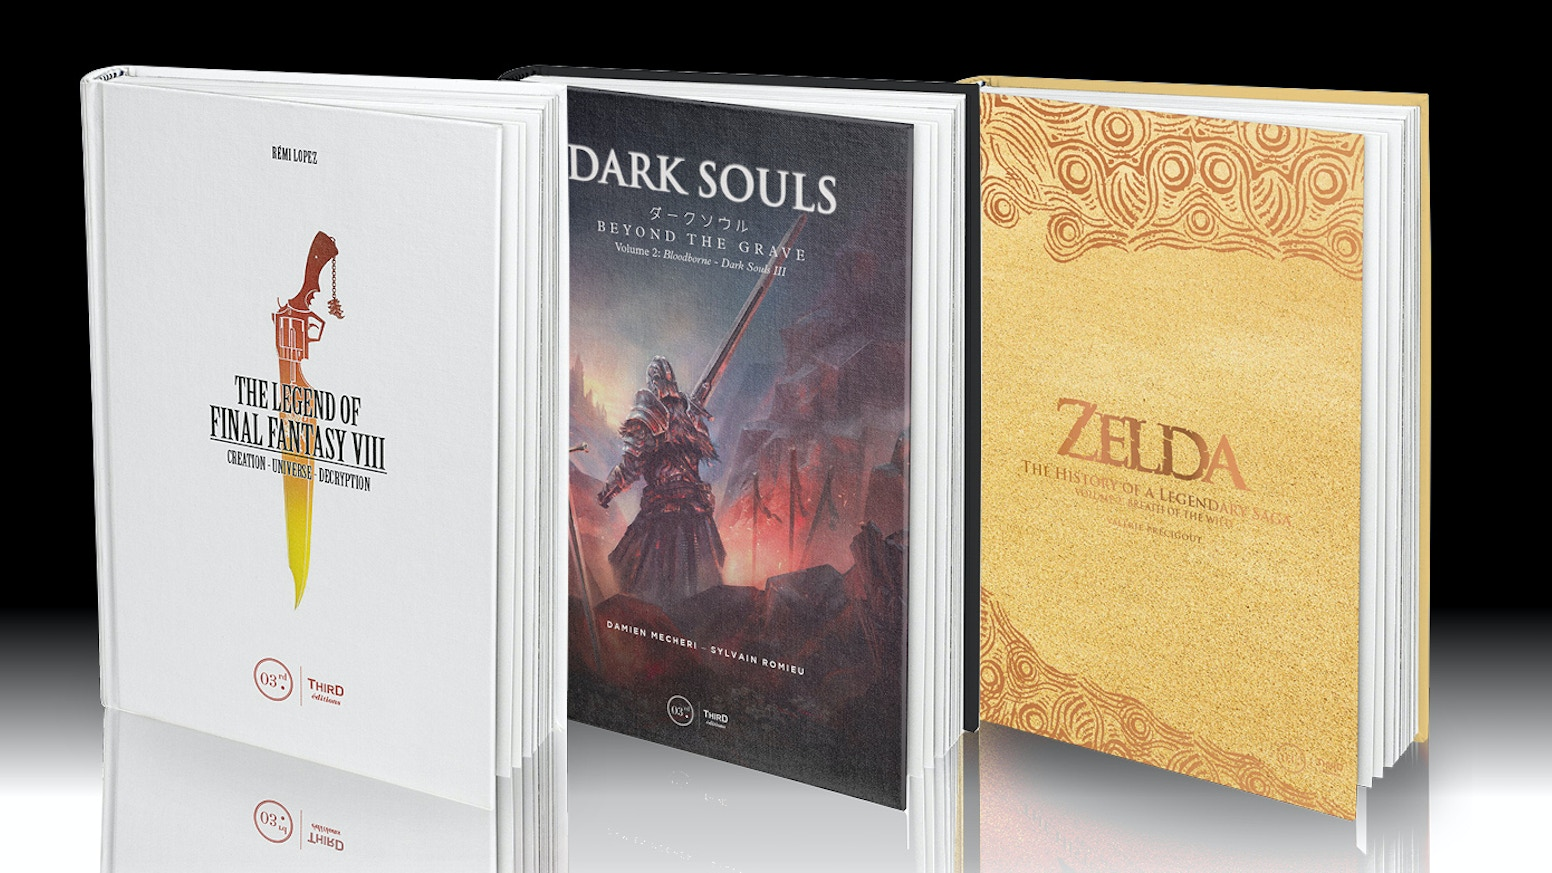 After a successful first KS campaign, Third Editions is back with a new campaign to bring more of its video game books to the world.